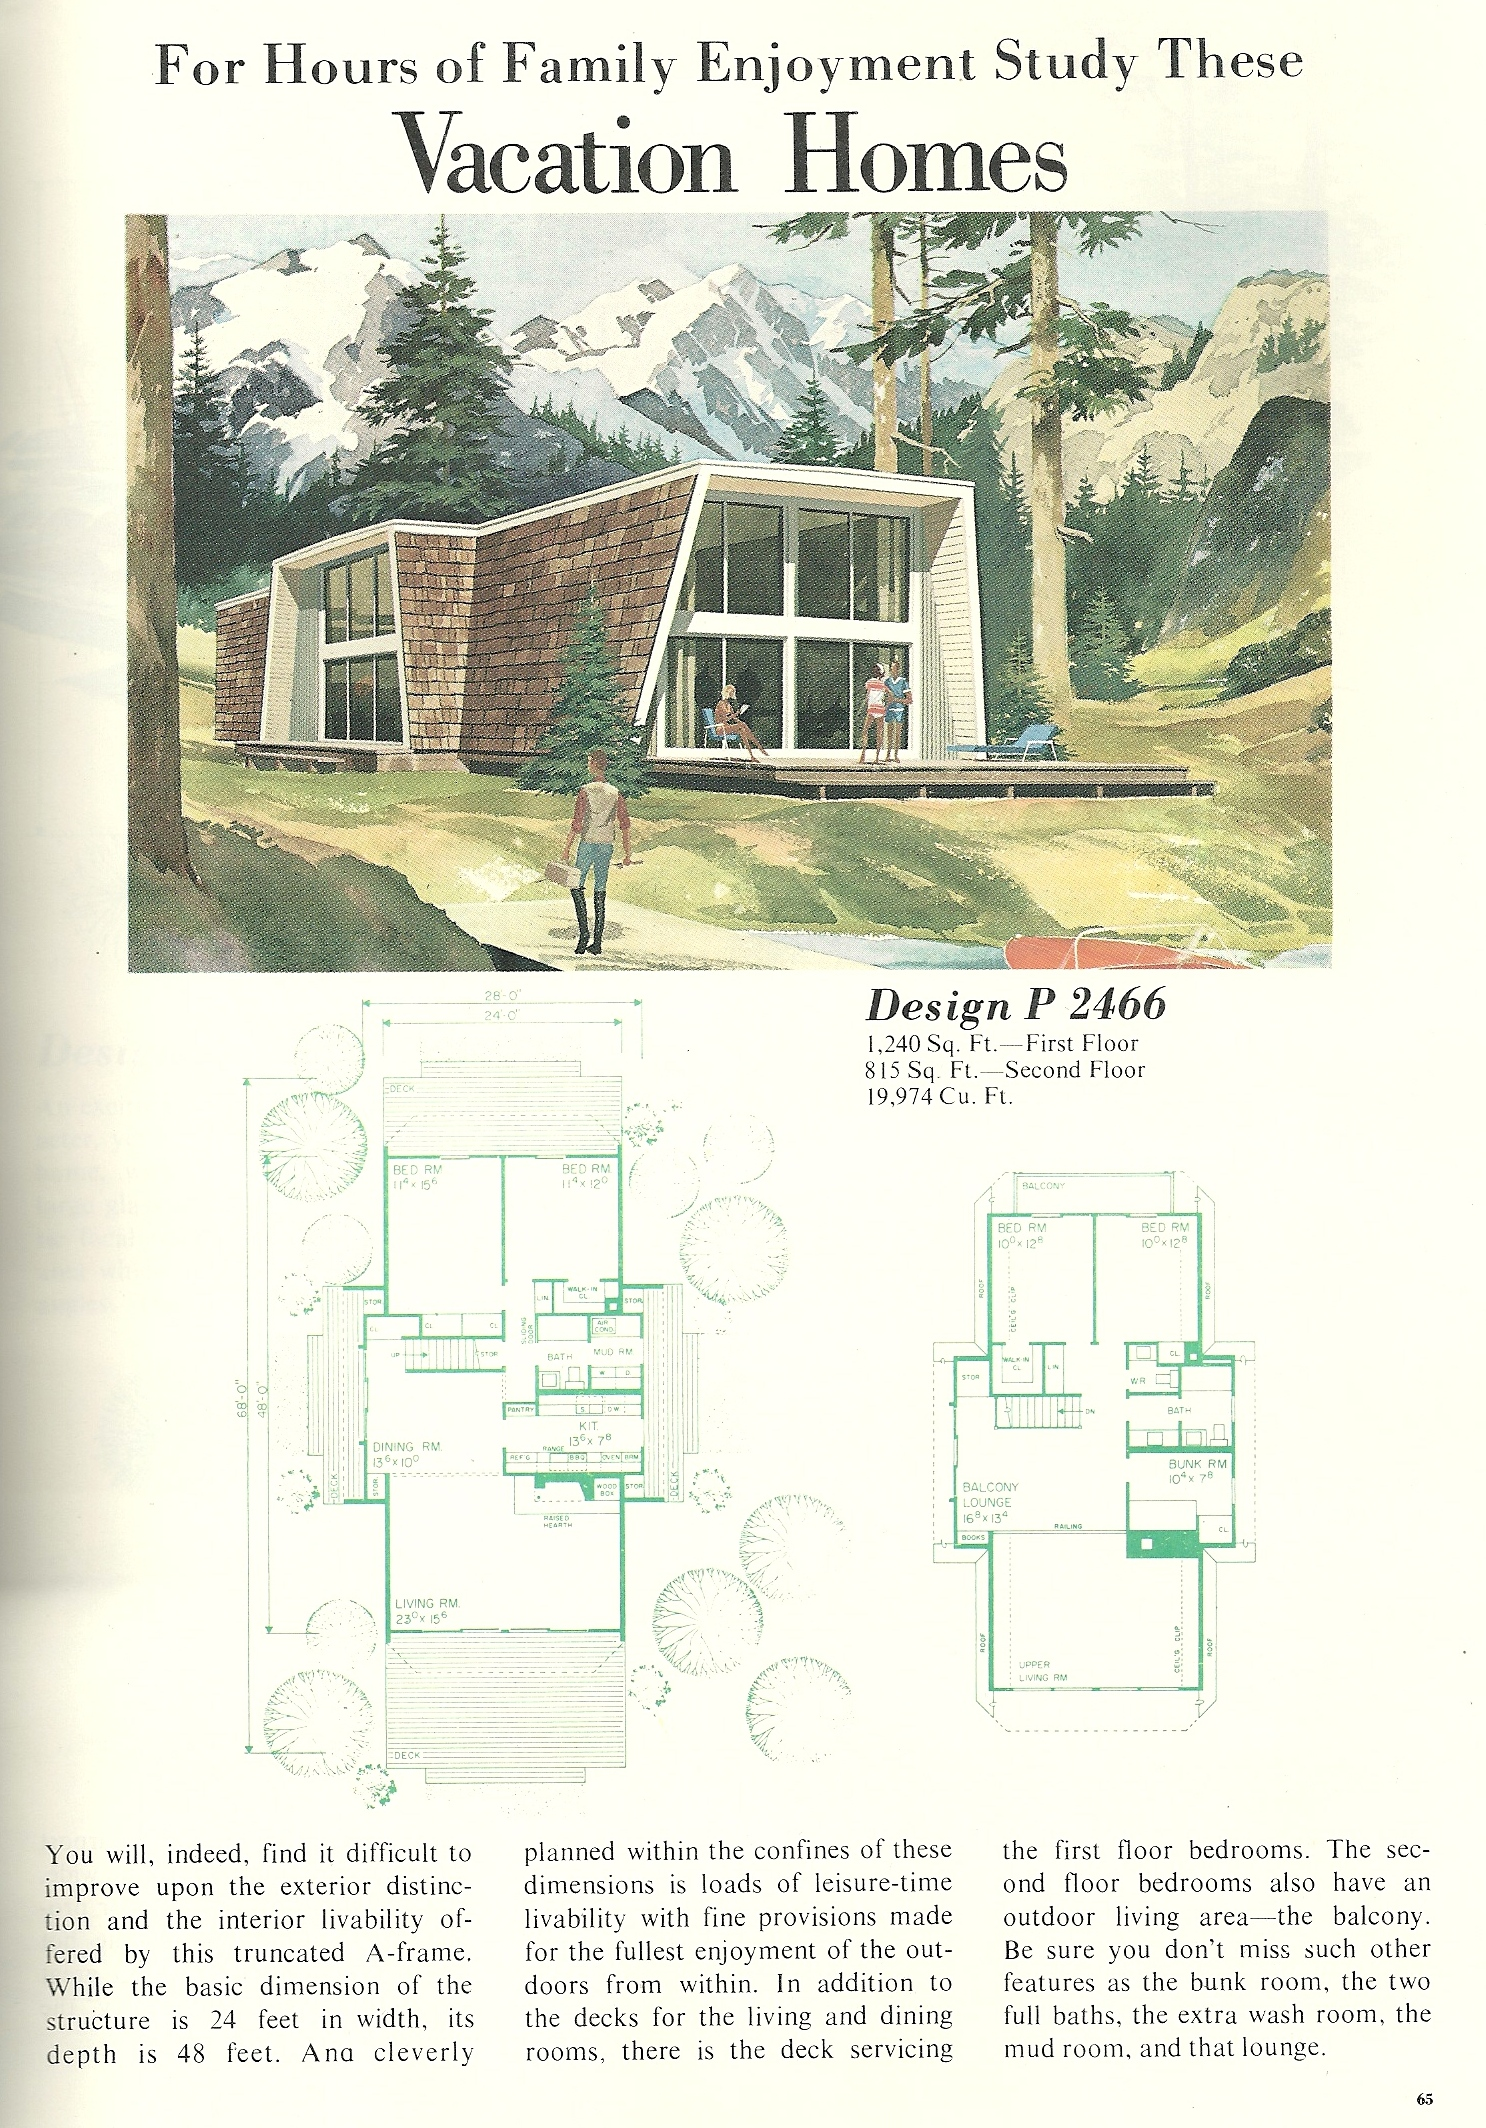 Vintage Vacation Home Plans 2466 Antique Alter Ego